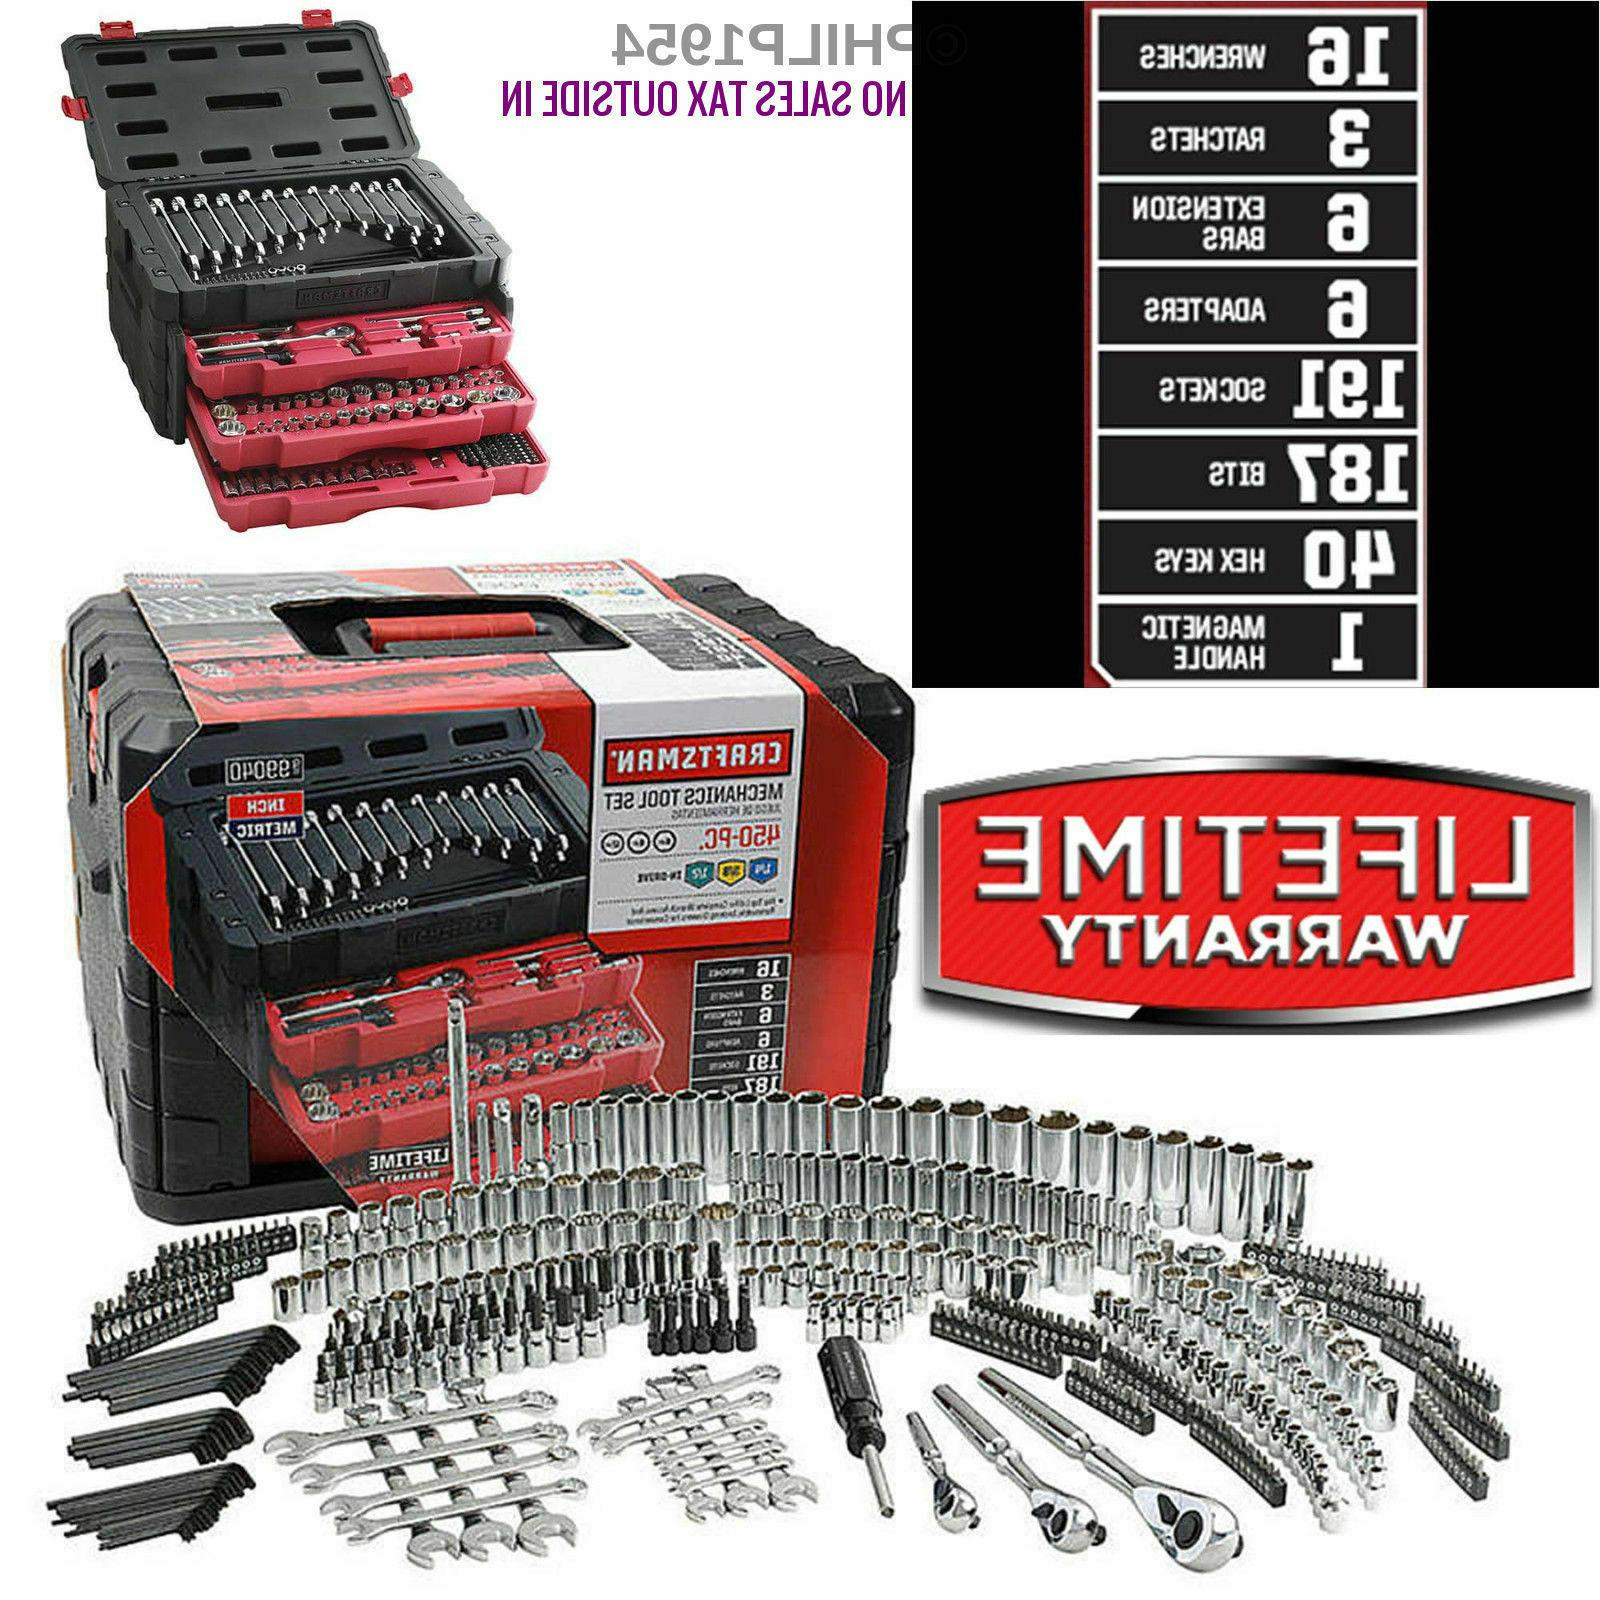 CRAFTSMAN 450 PIECE Mechanic's Tool Set with 3 Drawer Case B